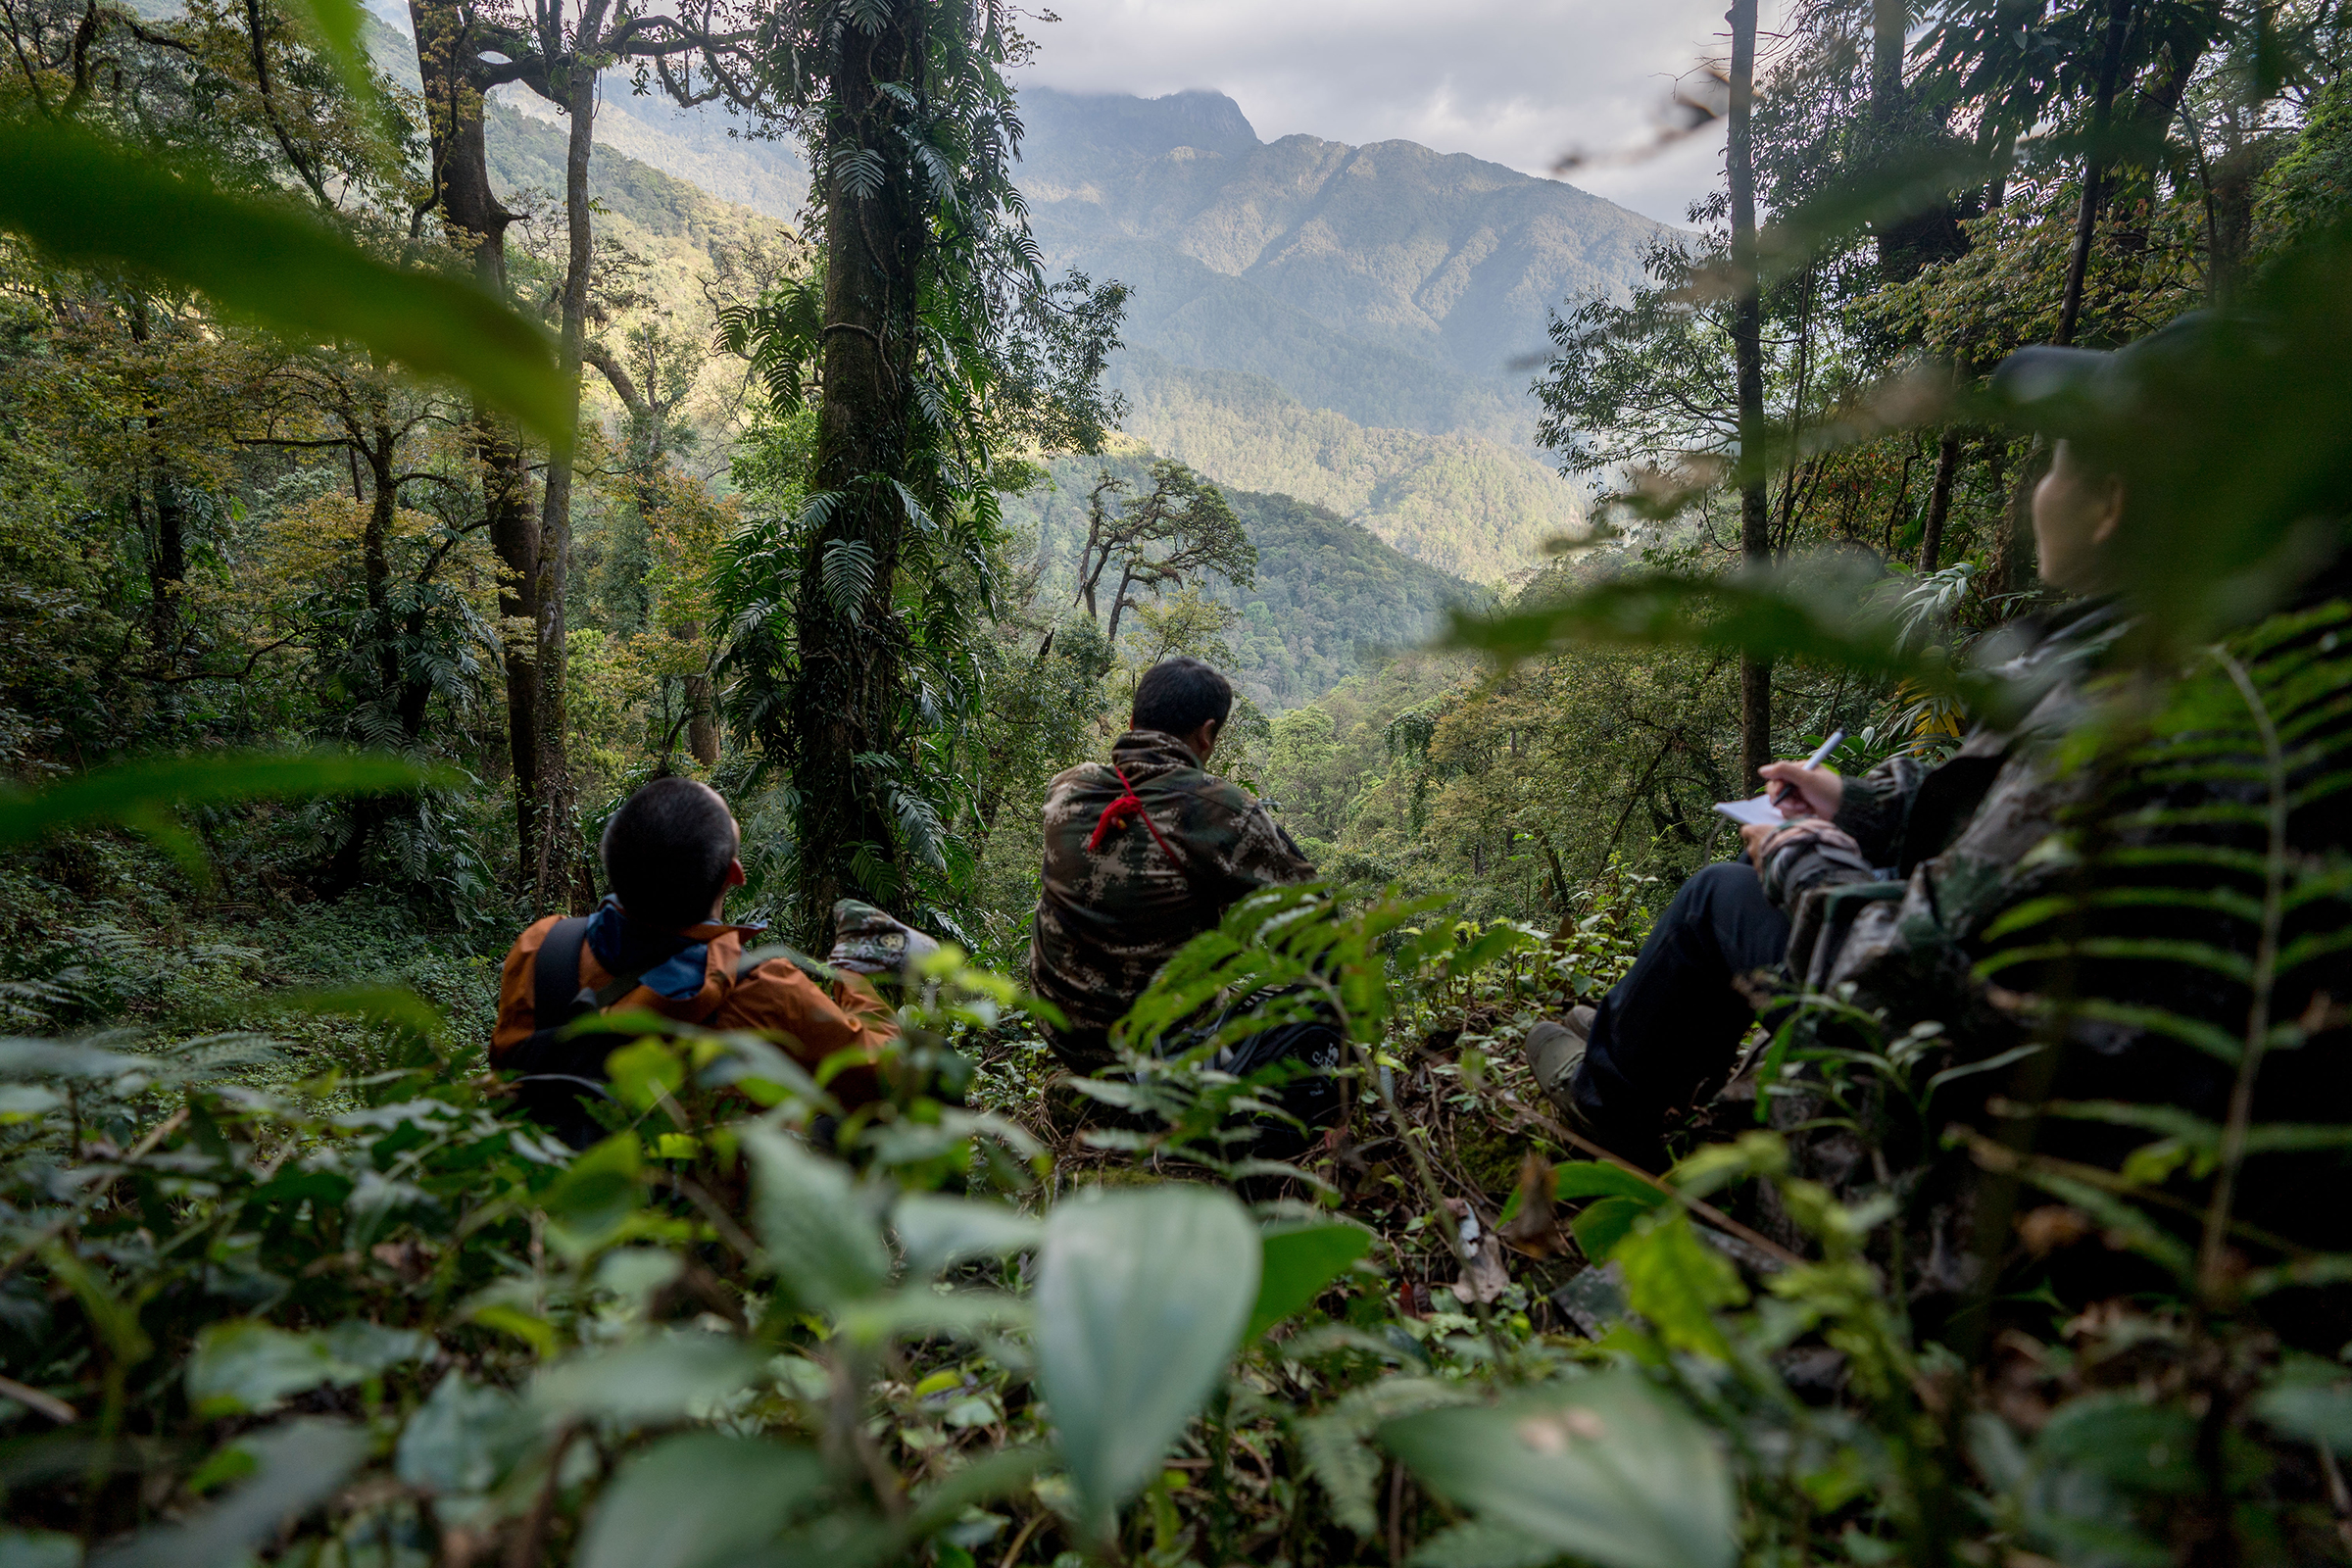 When the gibbons stop to eat or rest, the rangers do as well. Rangers follow the gibbons' movements across the mountain ridges streams from the pre-dawn hours when the animals wake up until late afternoon when they bed down for the night.